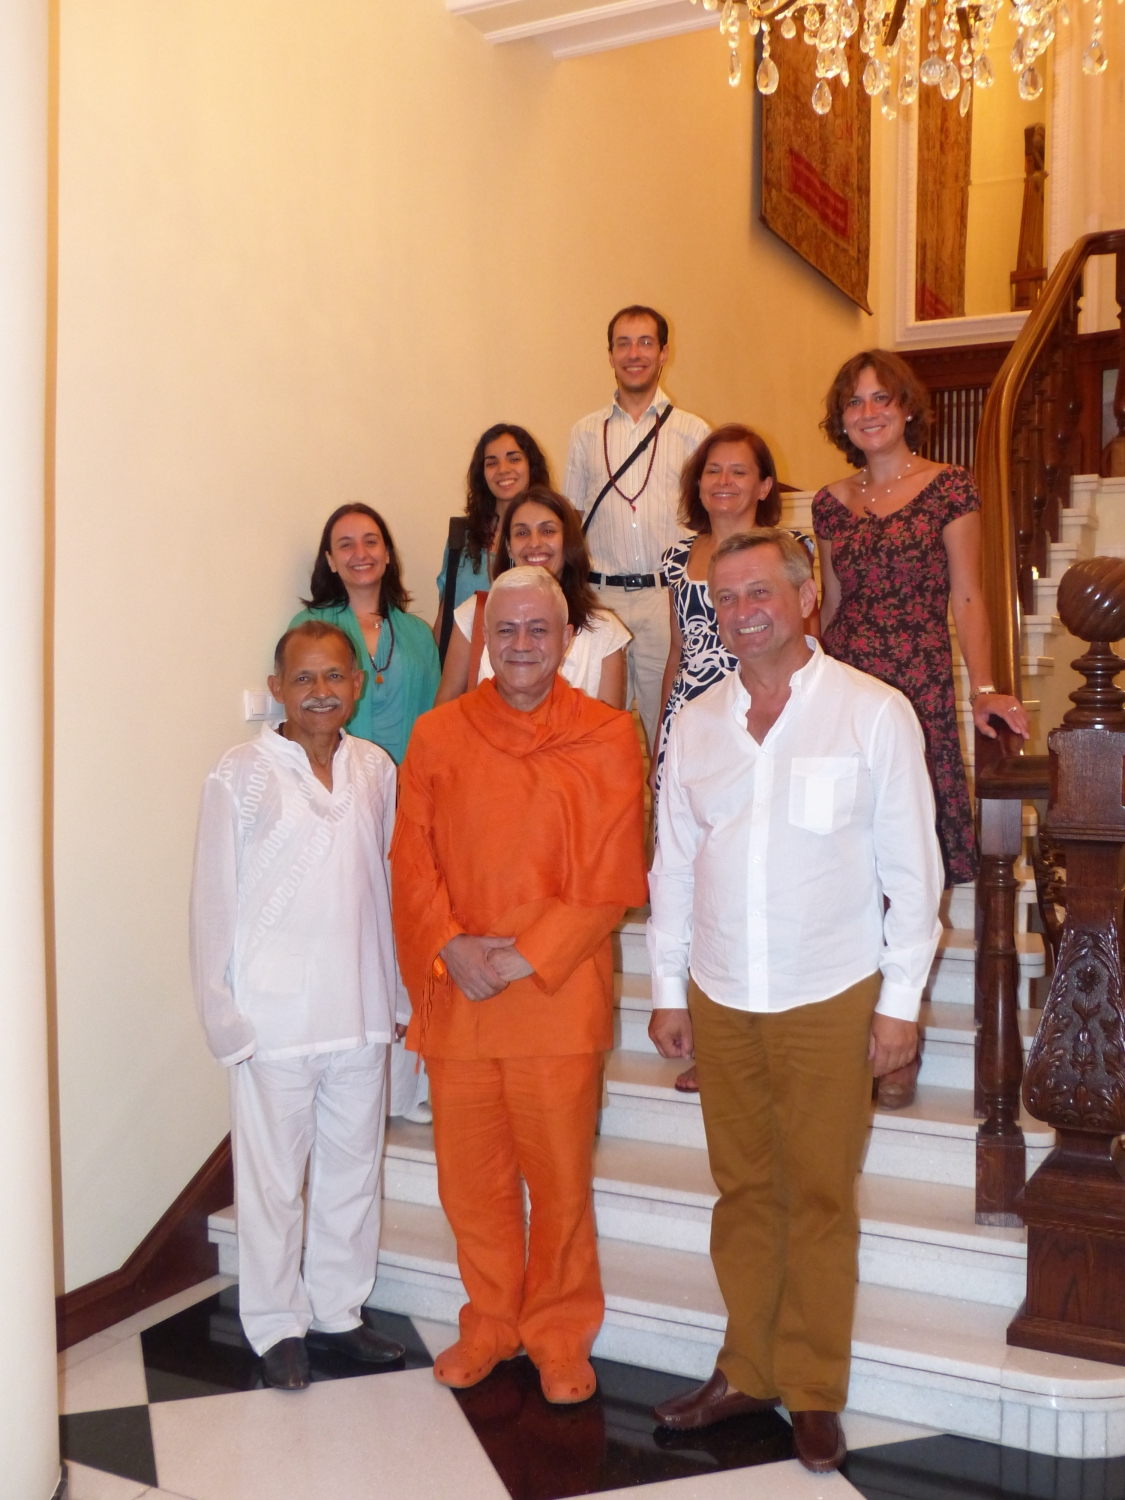 Meeting of H.H. Jagat Guru Amrta Sūryānanda Mahā Rāja with Shrí Chandra Mohan Bhandari - Former Ambassador of India - Poland, Sulisław - 2013, July